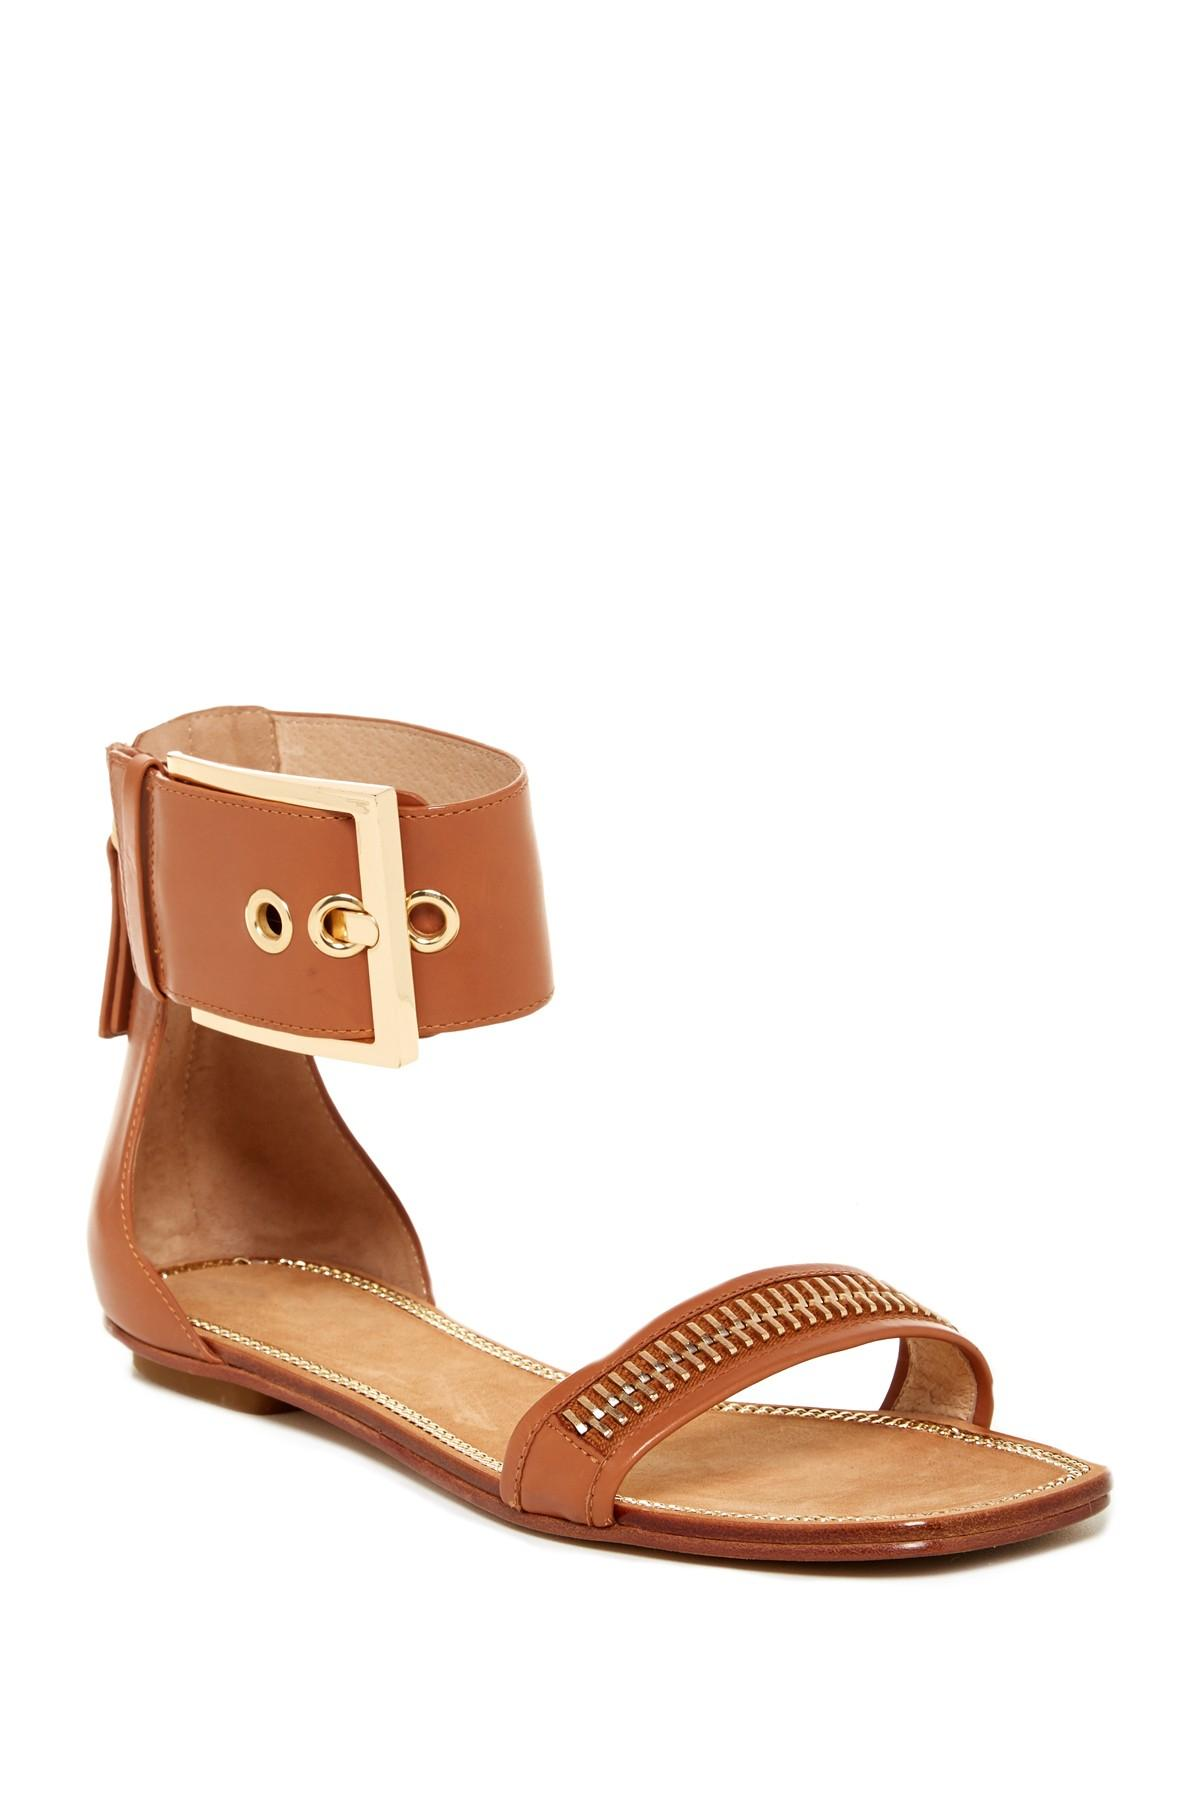 best store to get online order online Rachel Zoe Leather Ankle Cuff Sandals buy cheap pick a best sale online cheap OIEkHHu